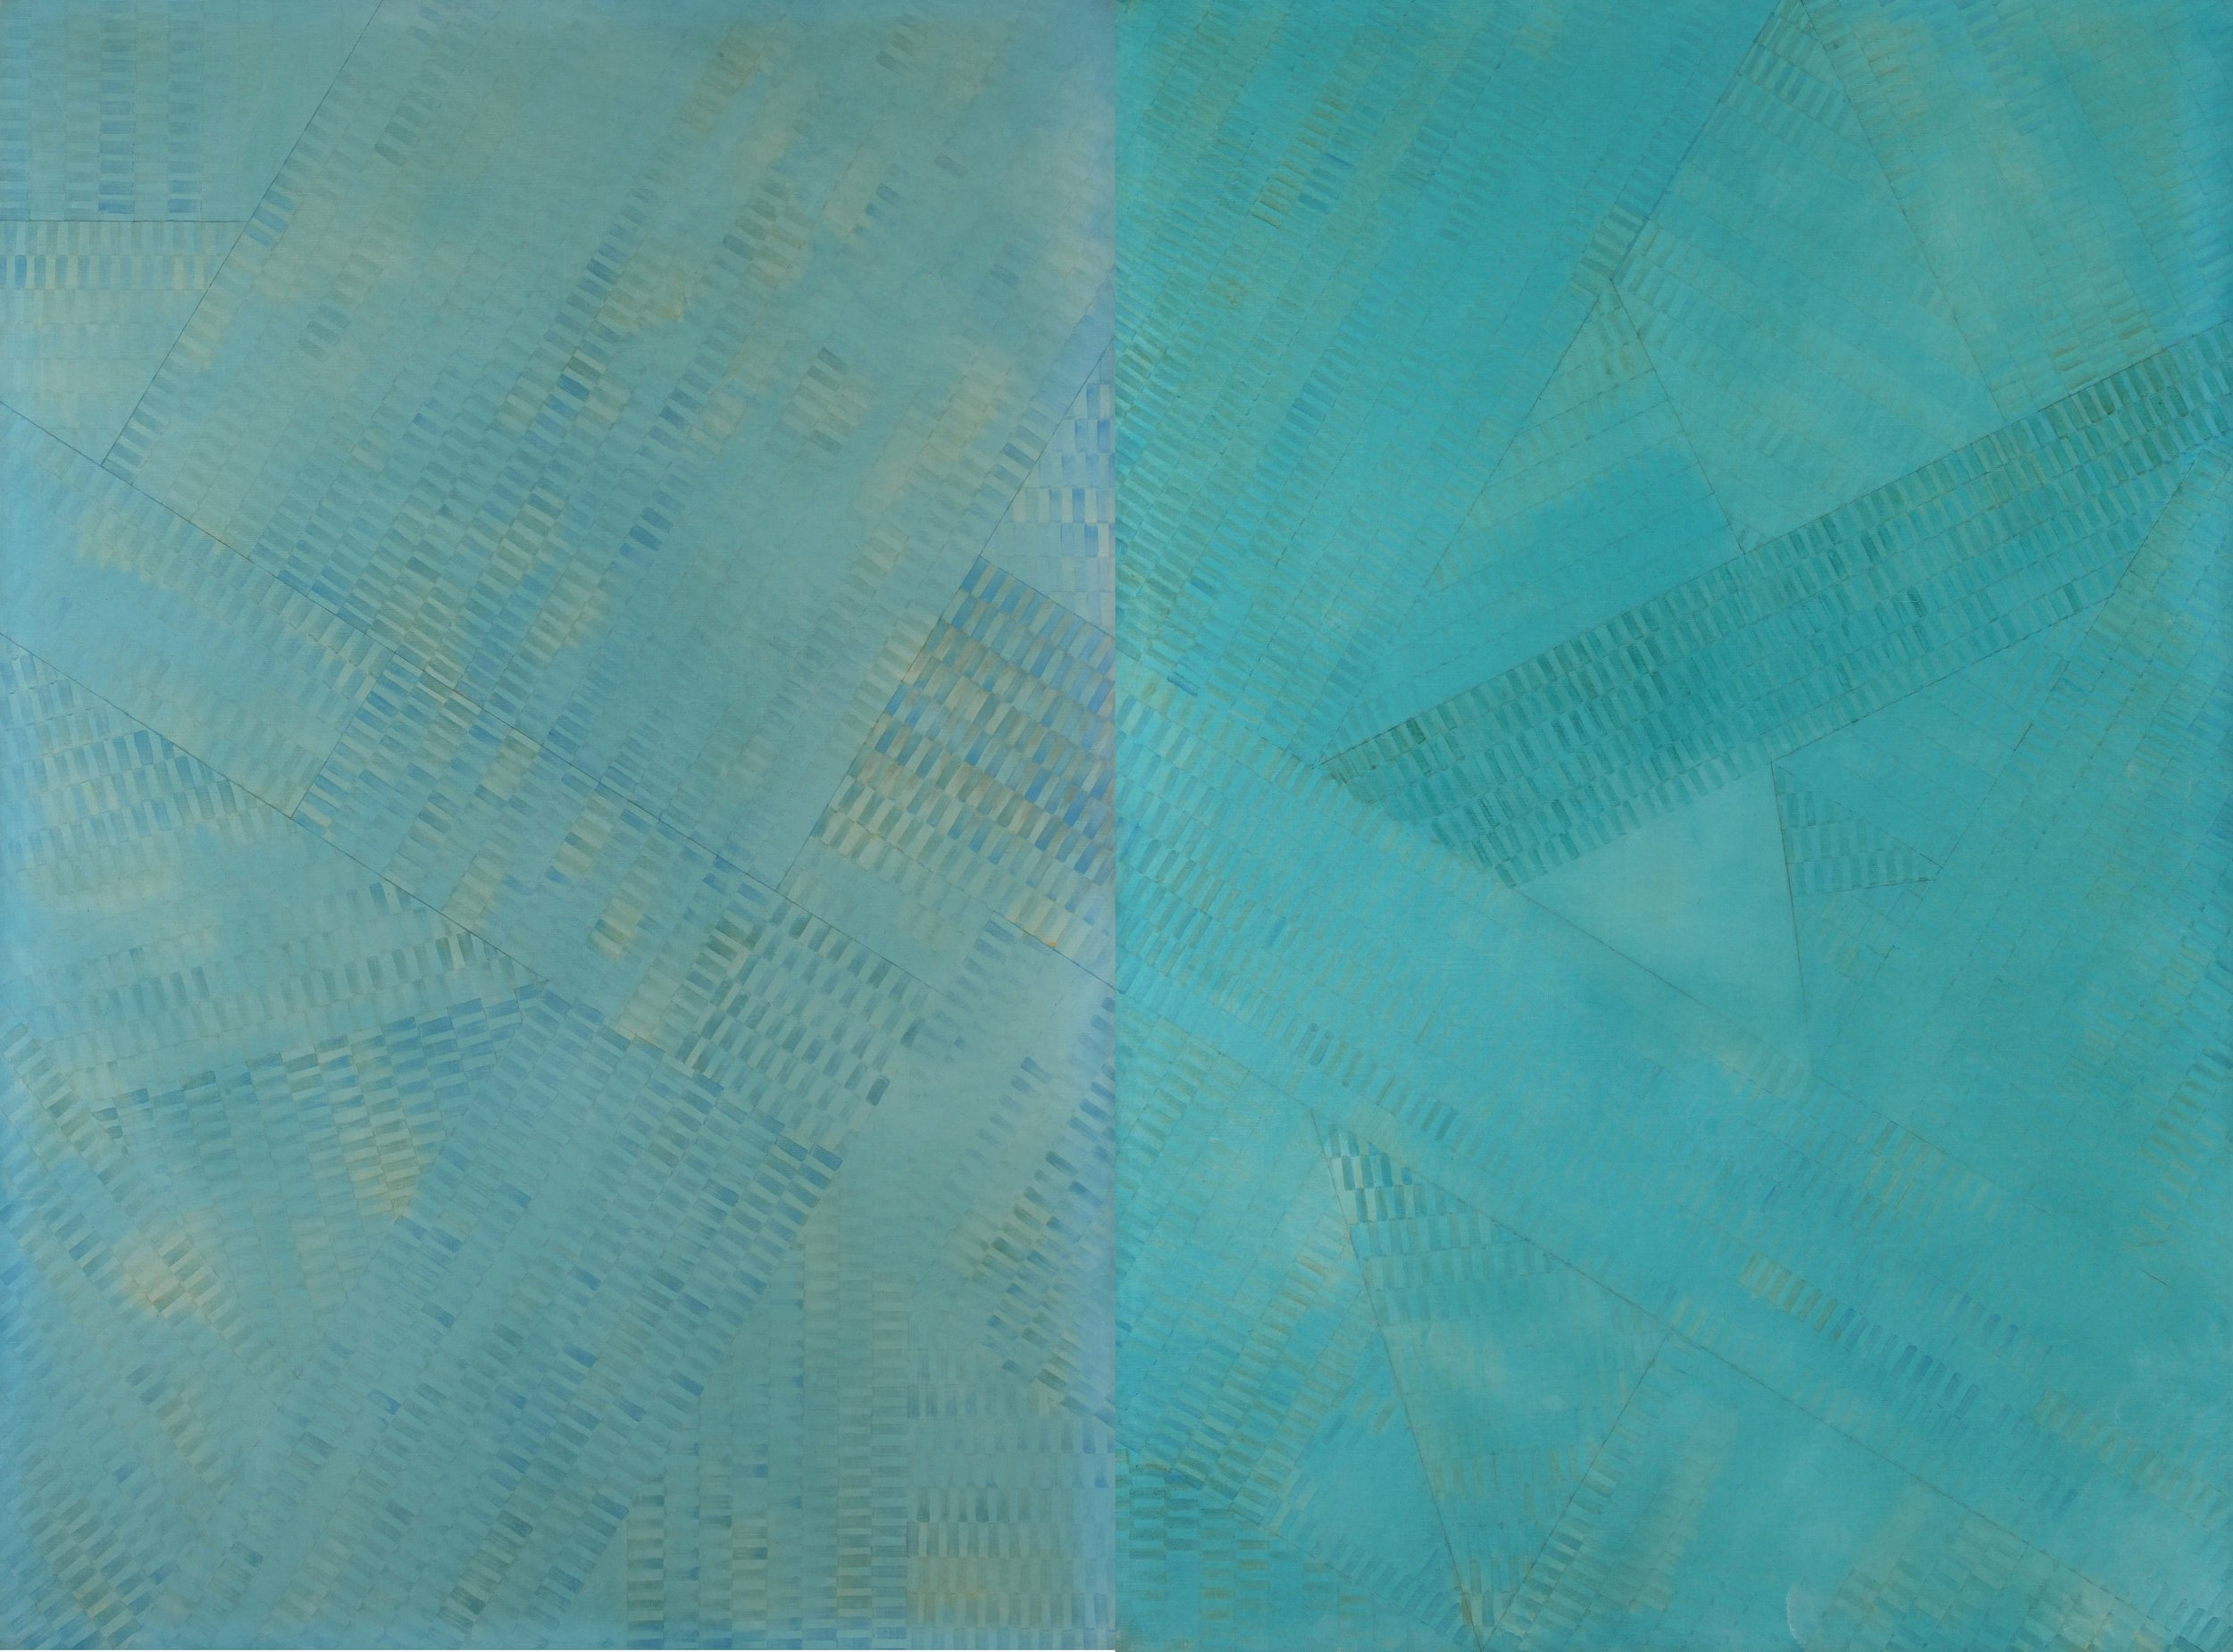 Itami Jun Ryu,  Manhattan Series Diptych,  oil on canvas, 193.9x260.6cm, 1995. Courtesy of the artist and The Columns Gallery.